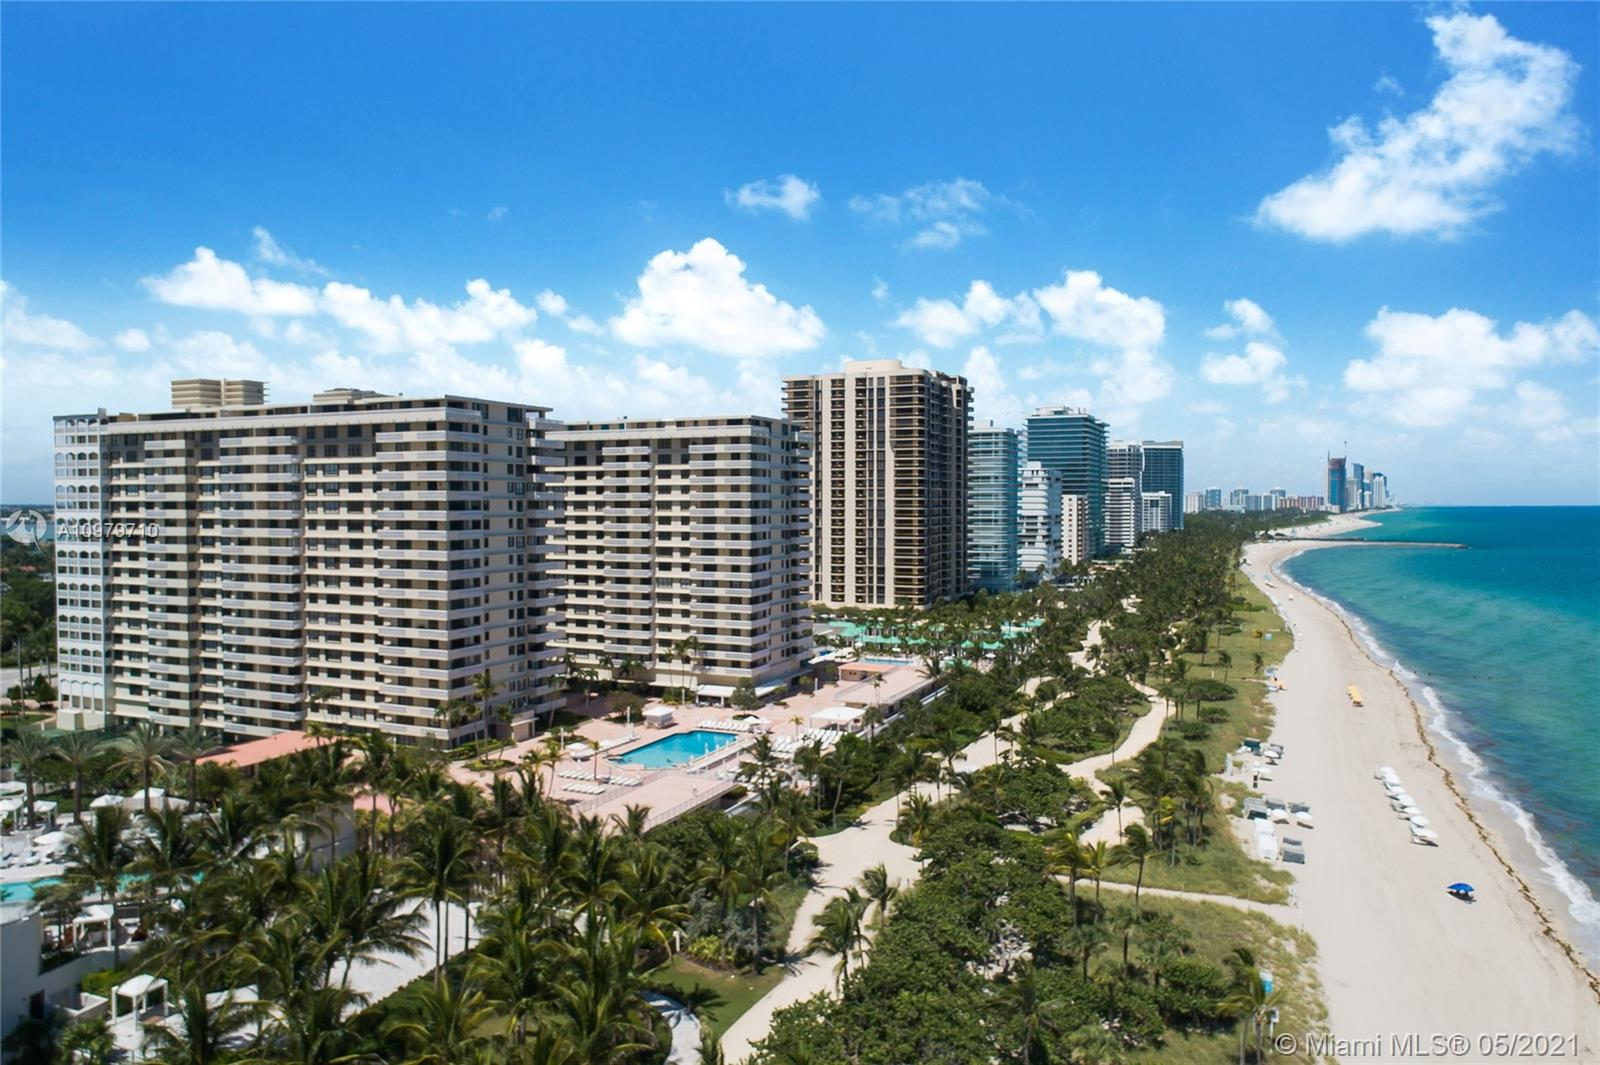 Photo of 9801 Collins Ave #10R, Bal Harbour, Florida, 33154 - Balmoral first building